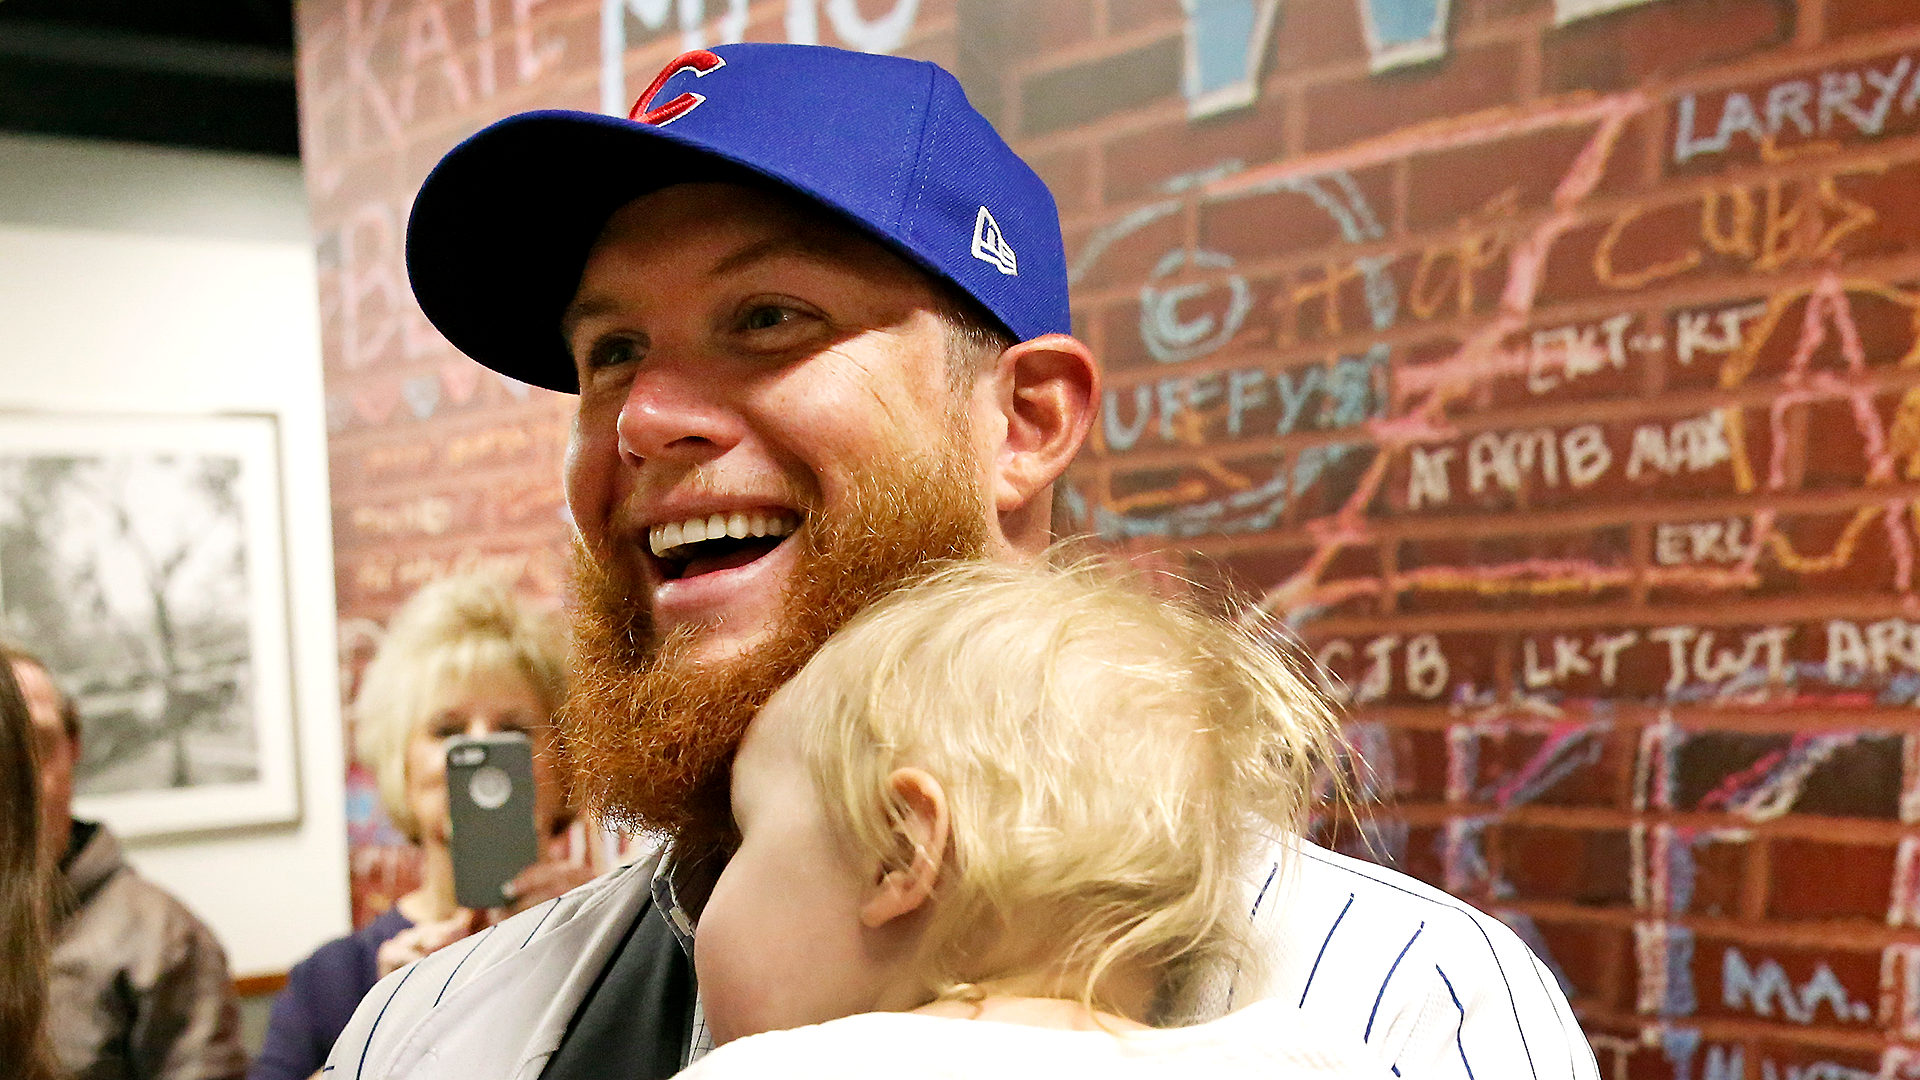 Craig Kimbrel likely to make Cubs debut later this week, report says